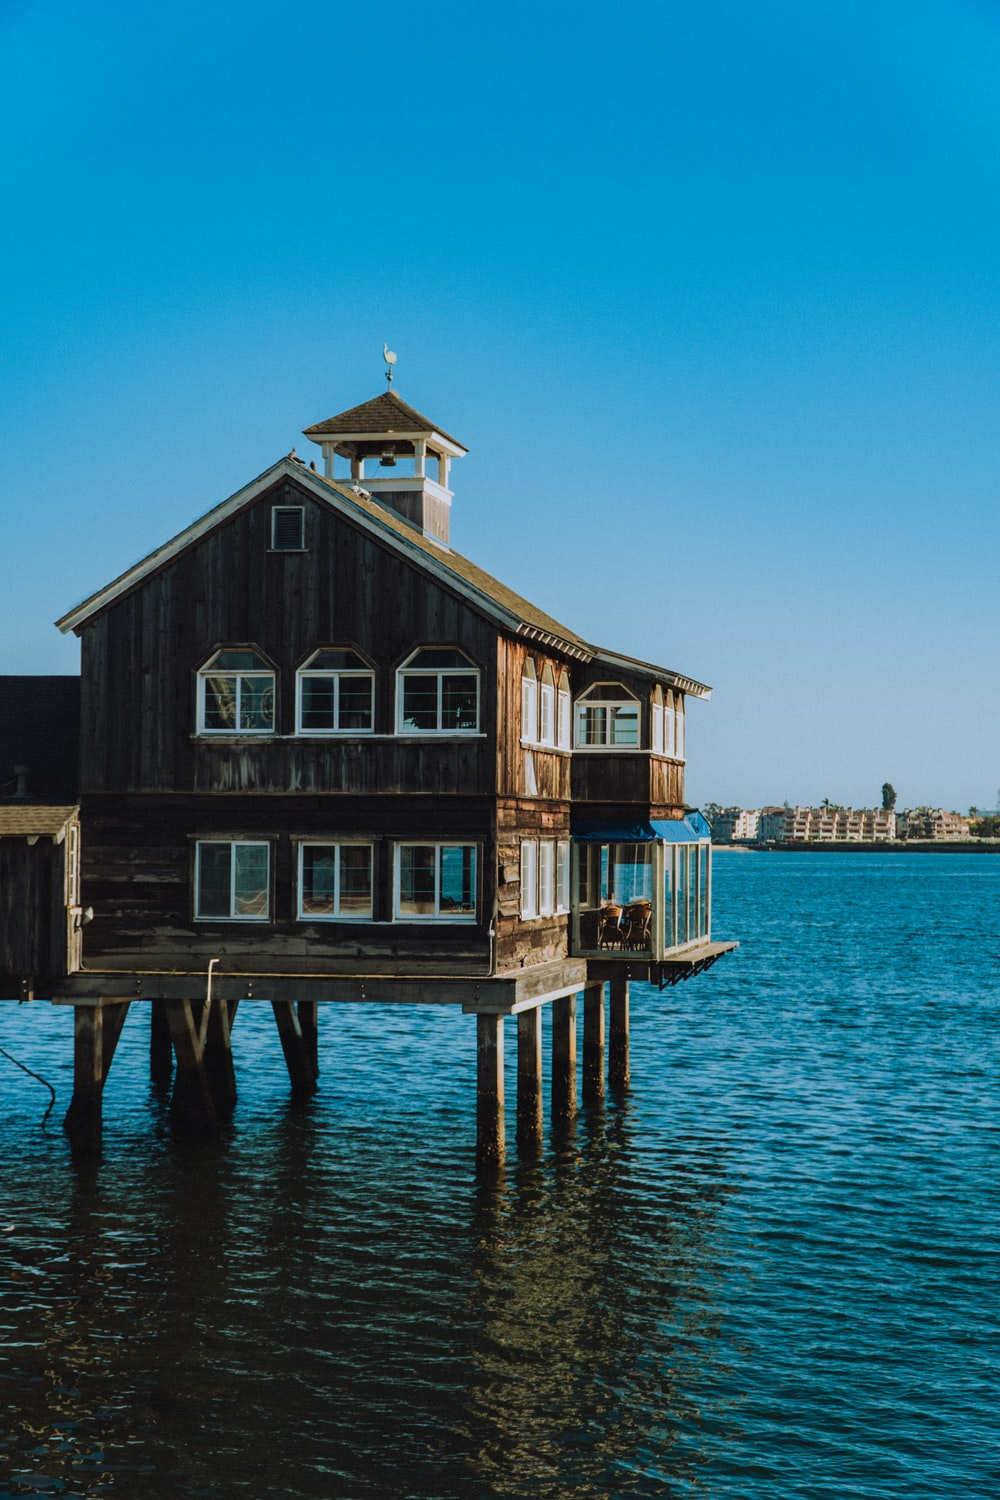 brown wooden house on dock during daytime